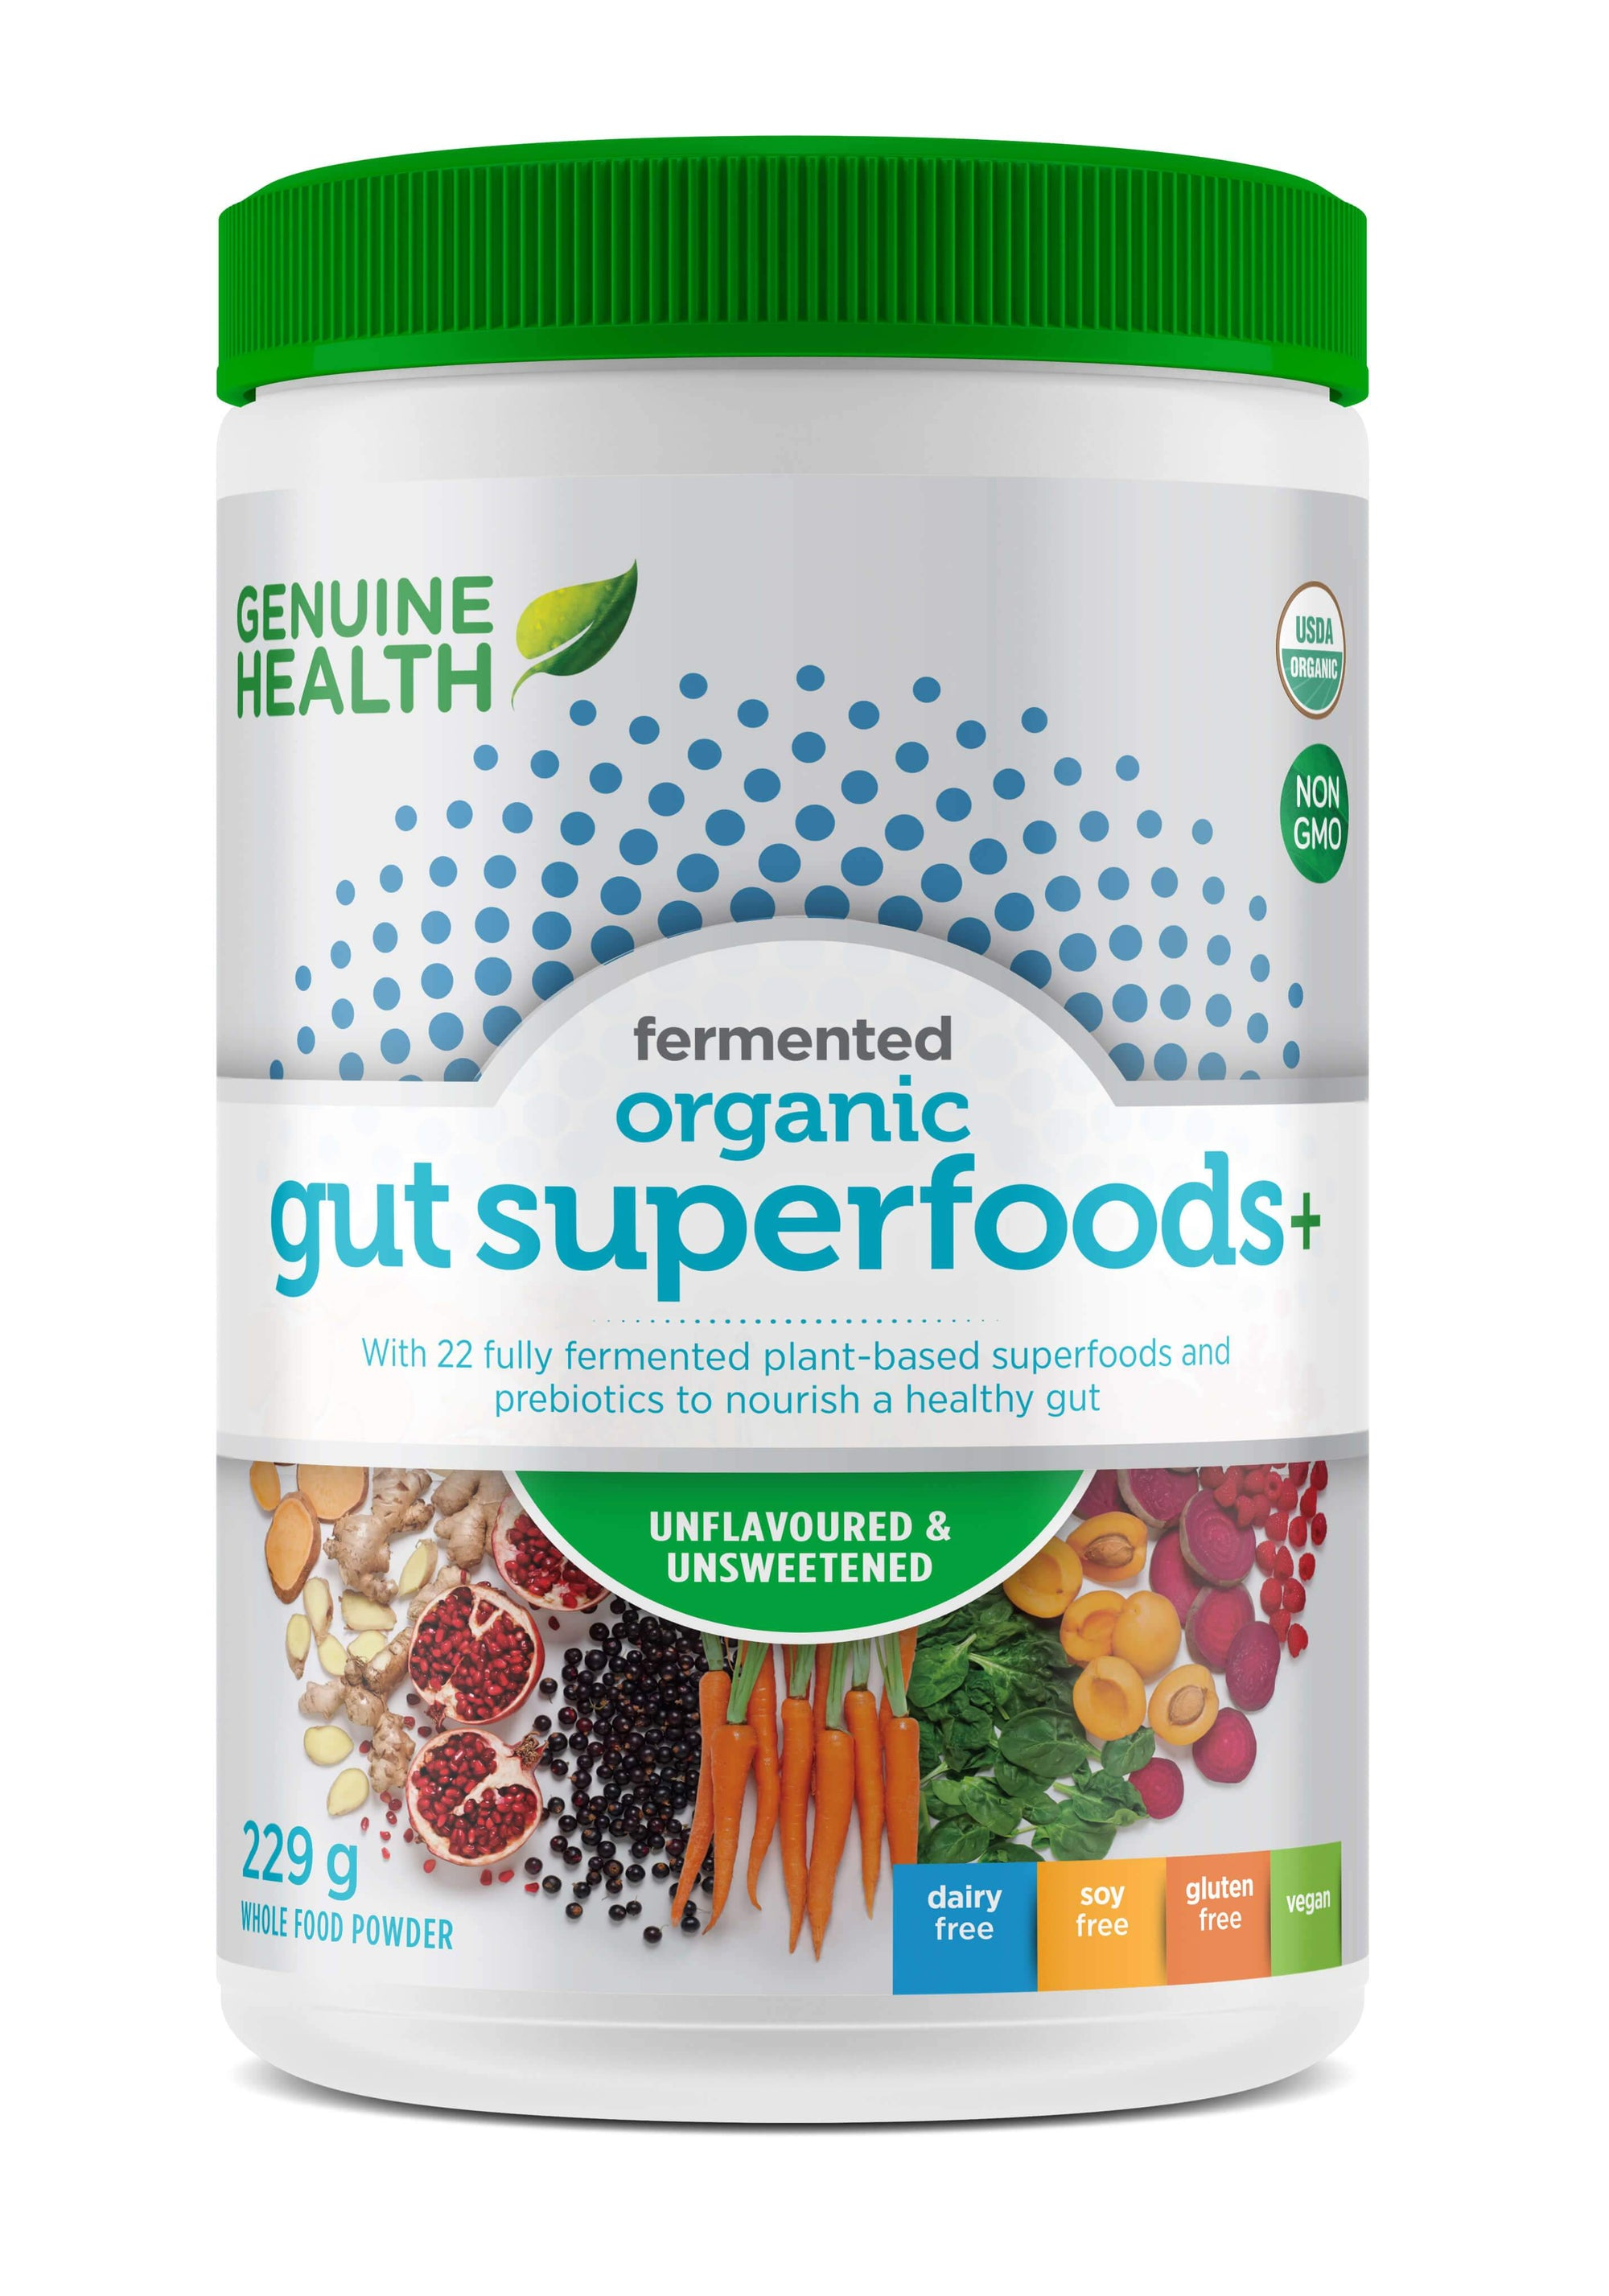 Supplements & Vitamins - Genuine Health - Fermented Gut Superfoods+, Unflavoured, 229g